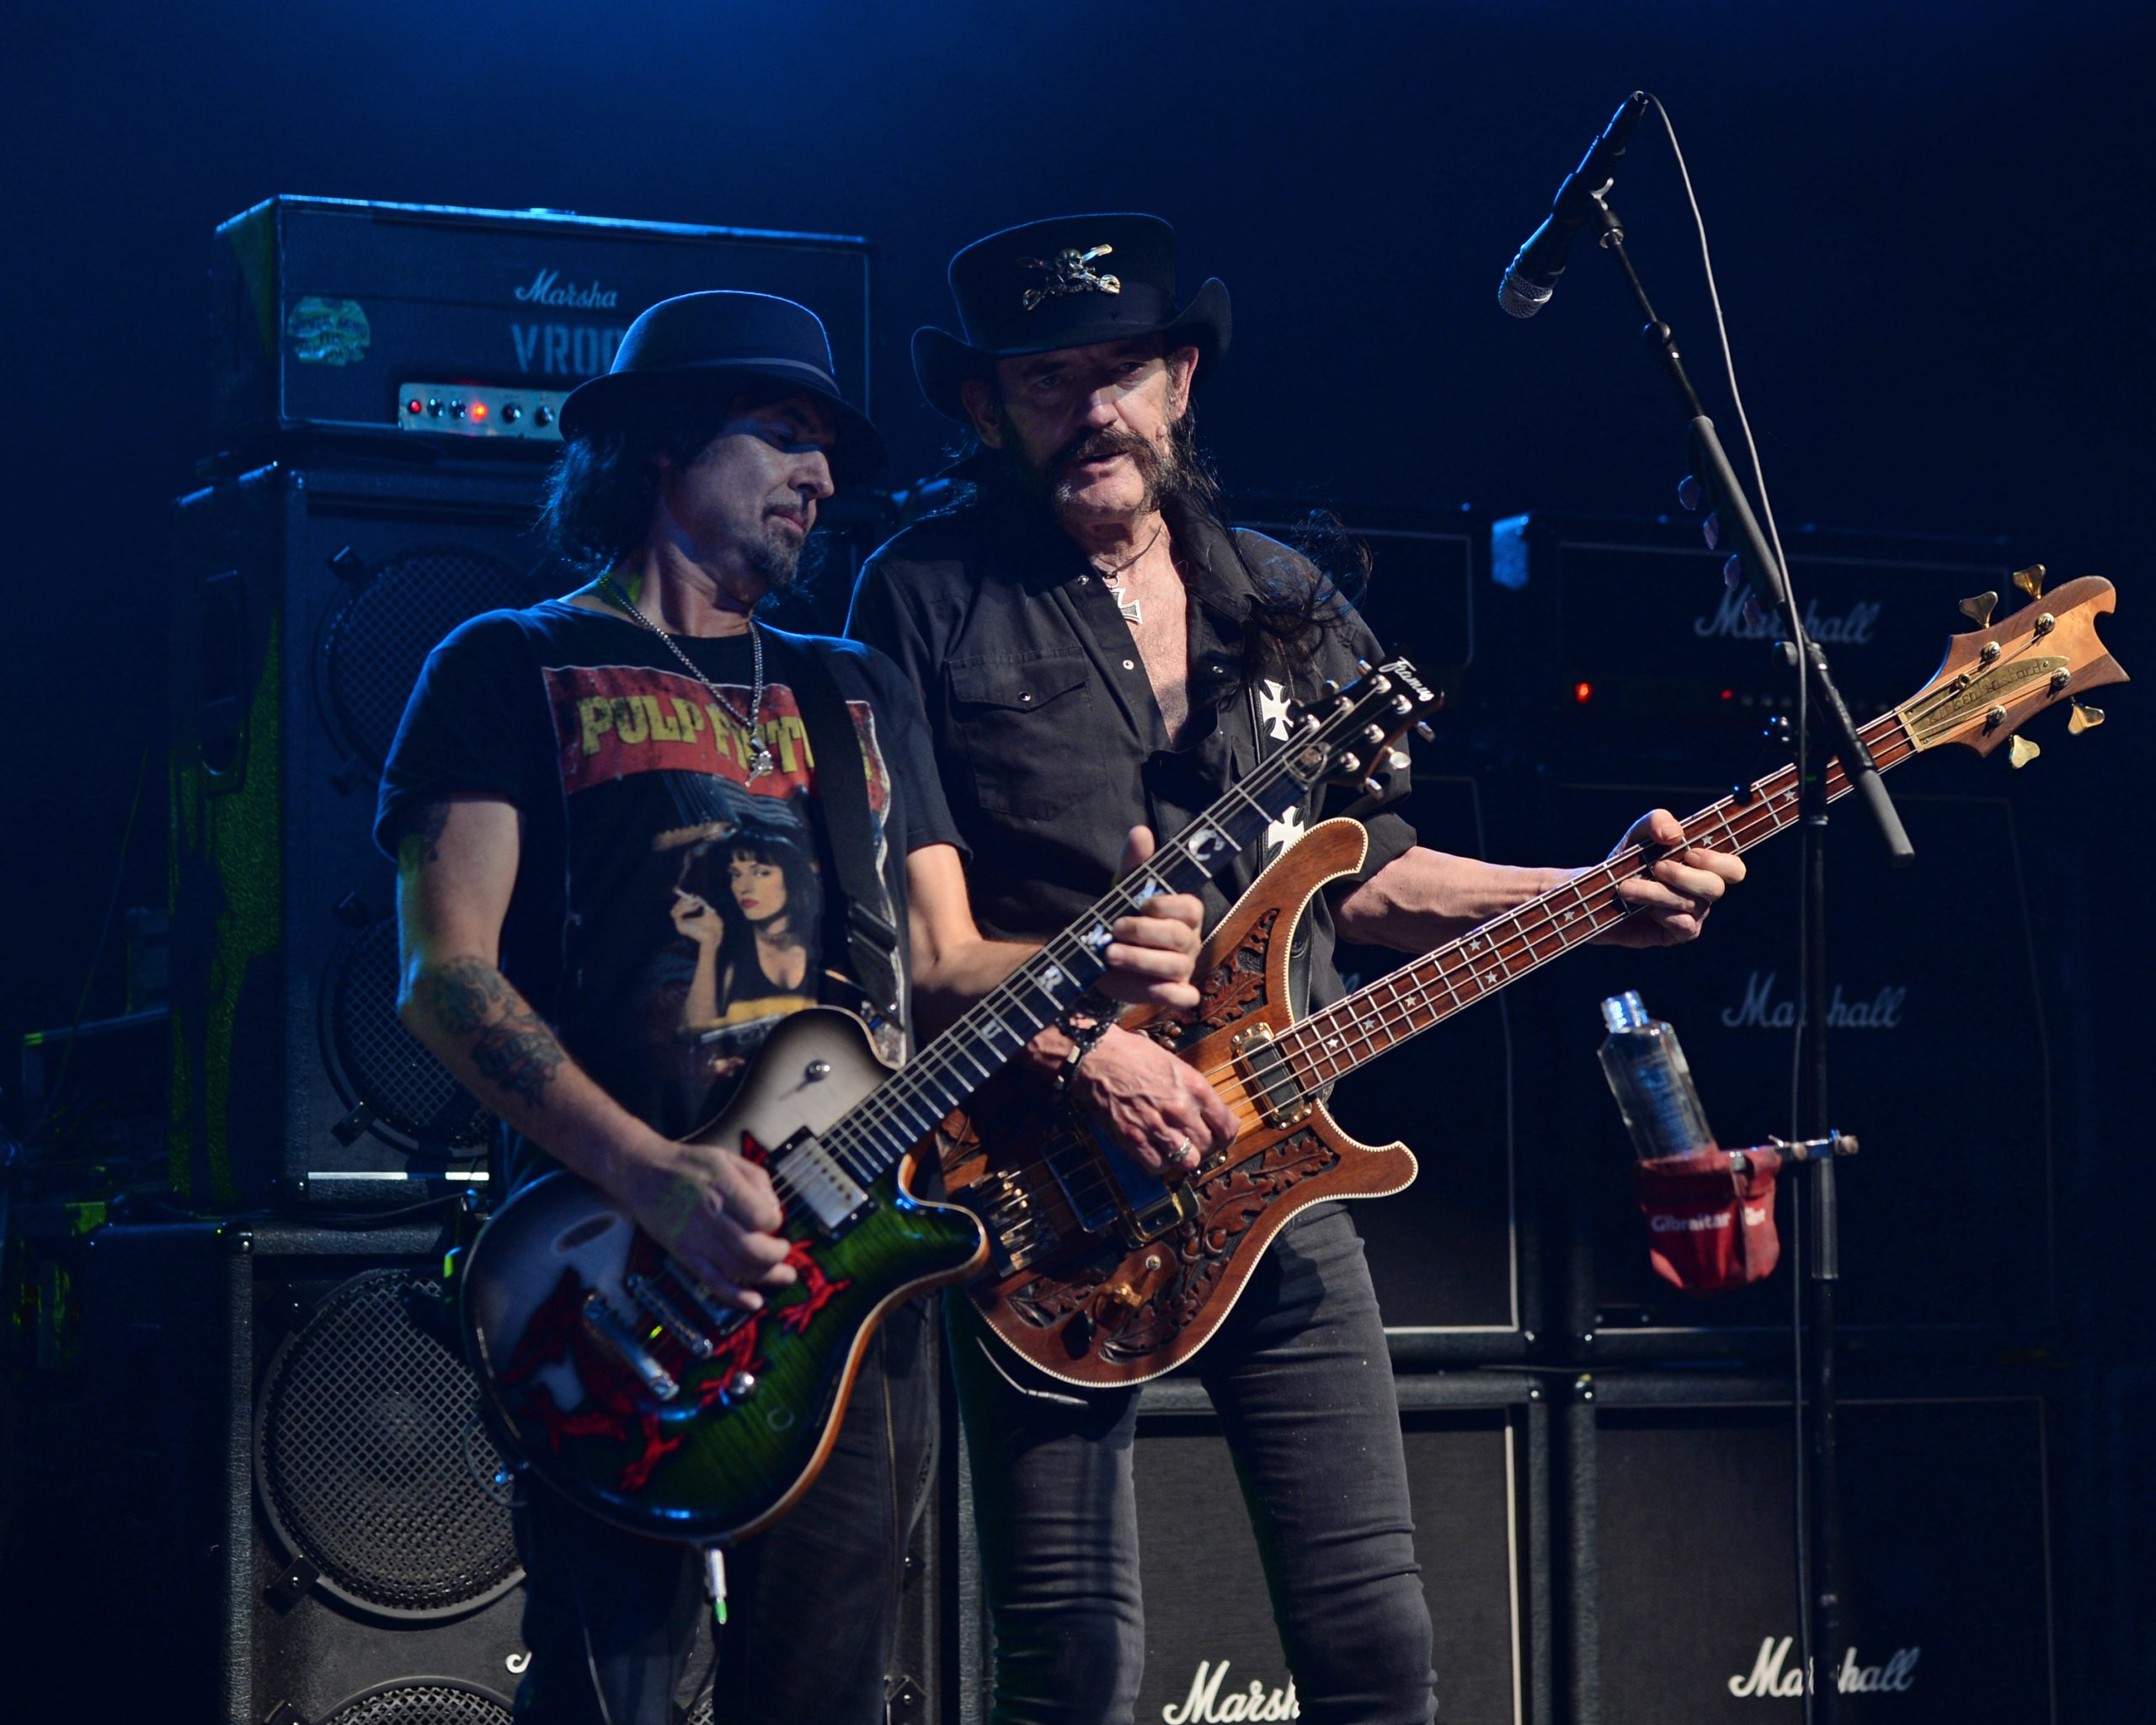 Motörhead to release a live album of one of their last concerts